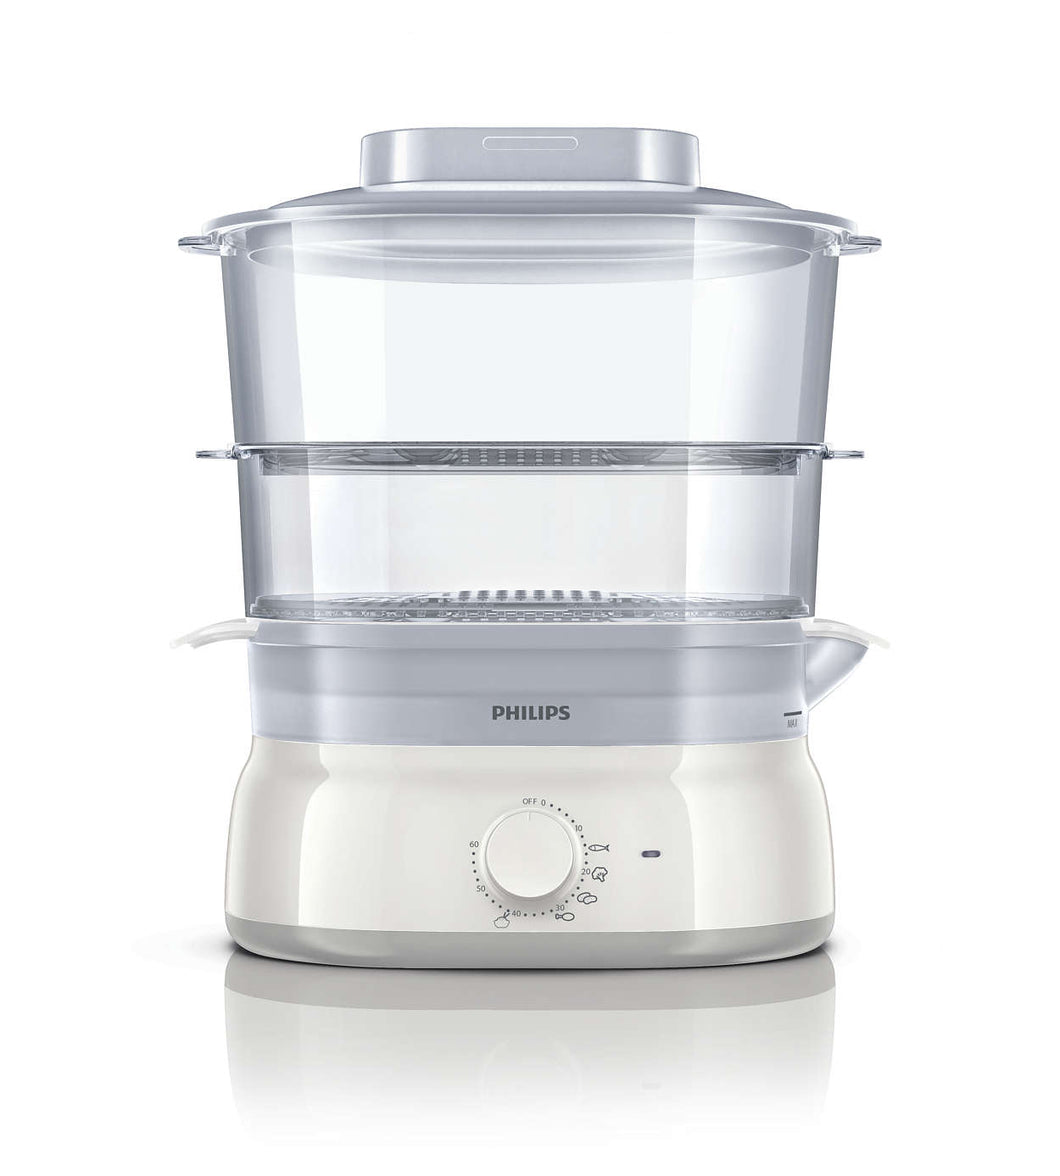 Philips Daily Collection Steamer